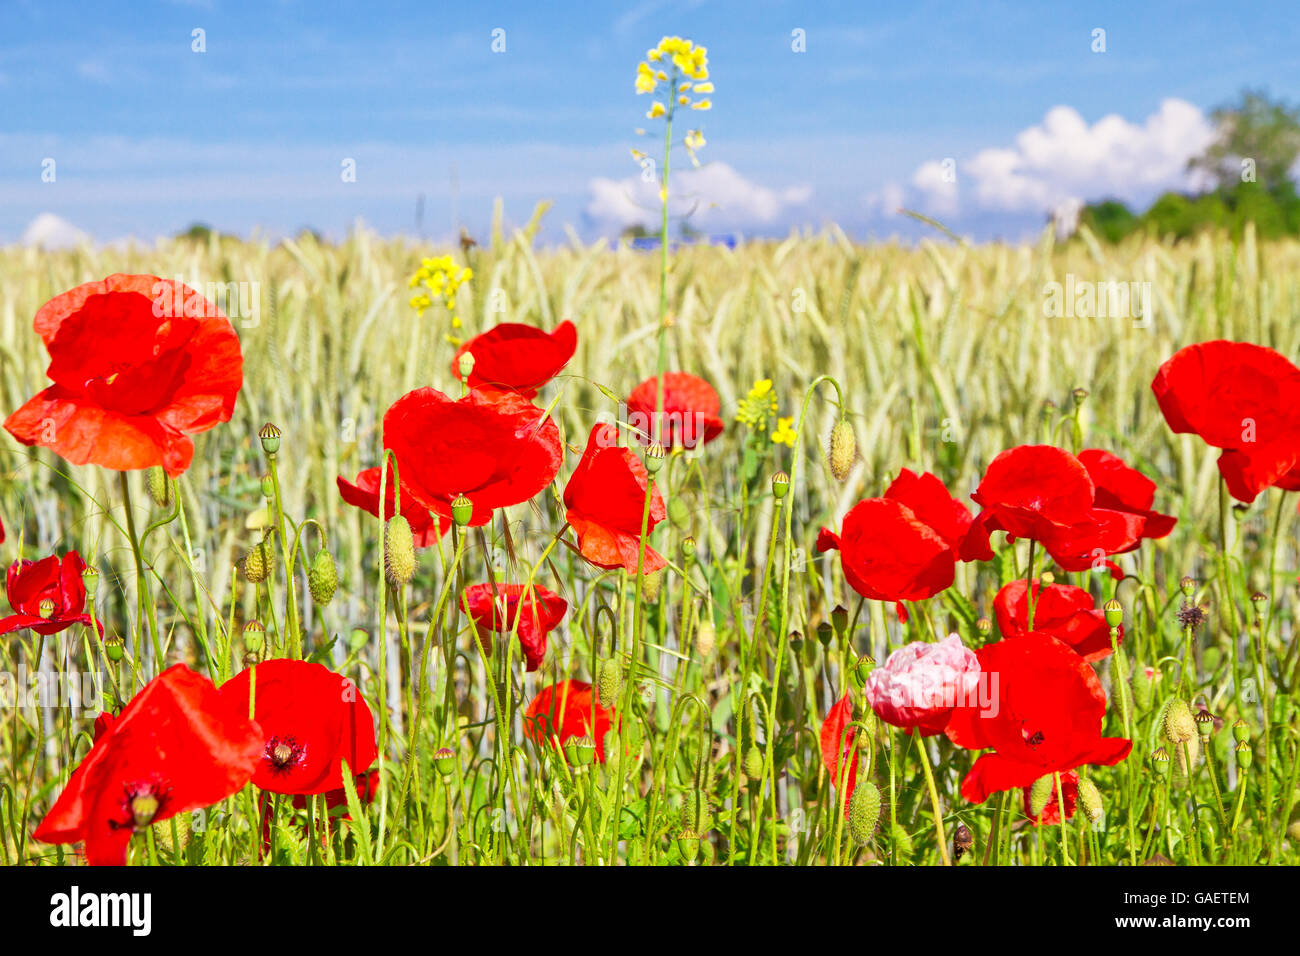 Agriculture,poppies,flowers,field,summer,growth - Stock Image